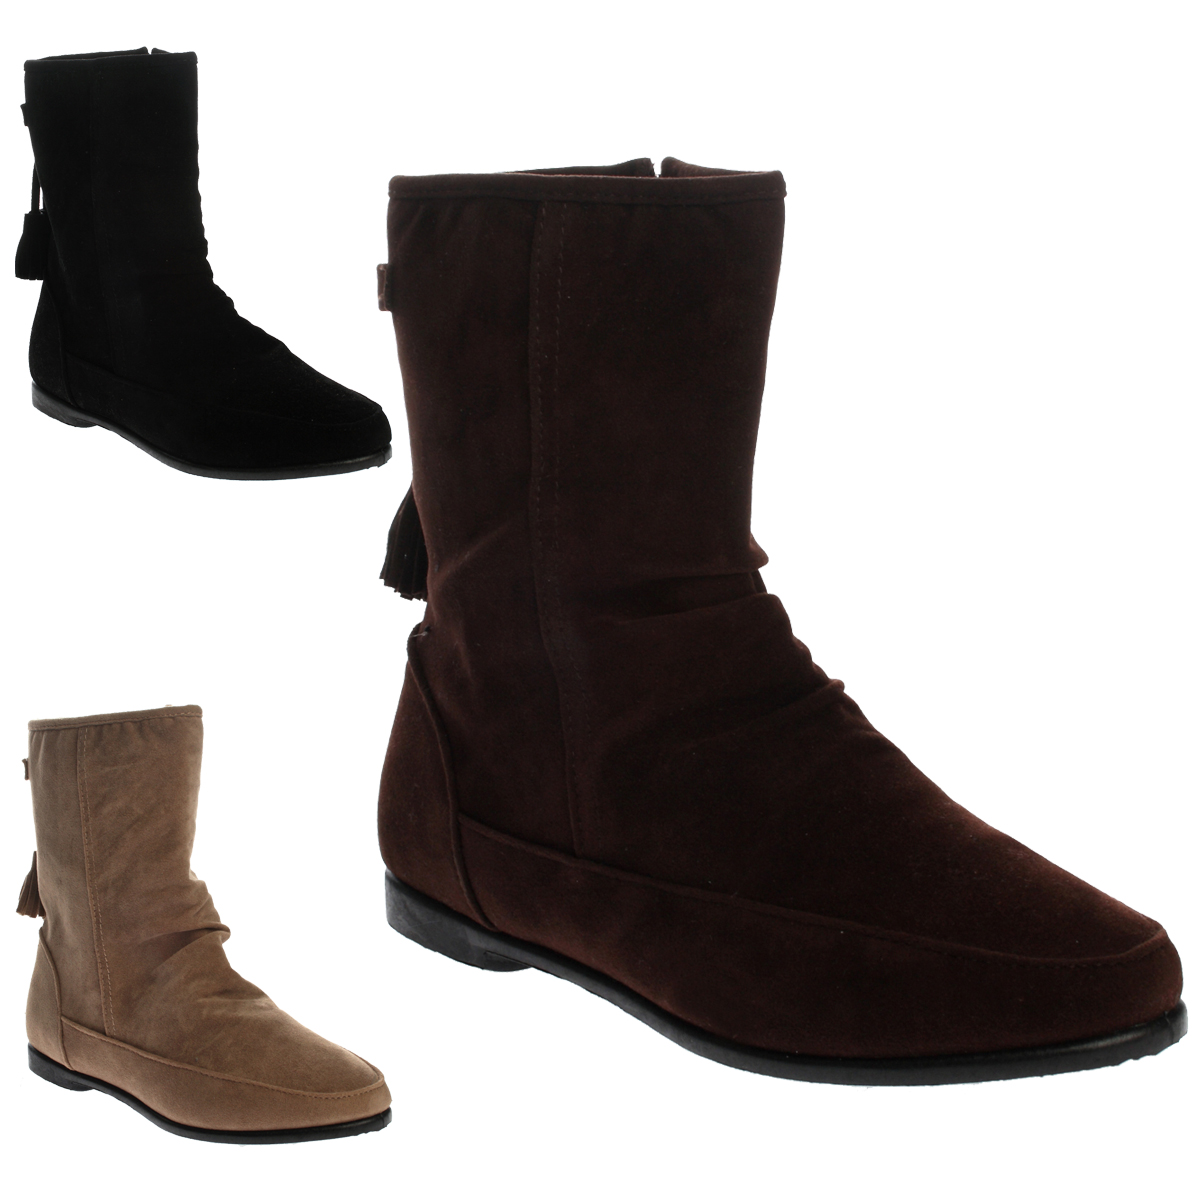 9g womens faux suede ladies flat tassel zip up pixie ankle boots